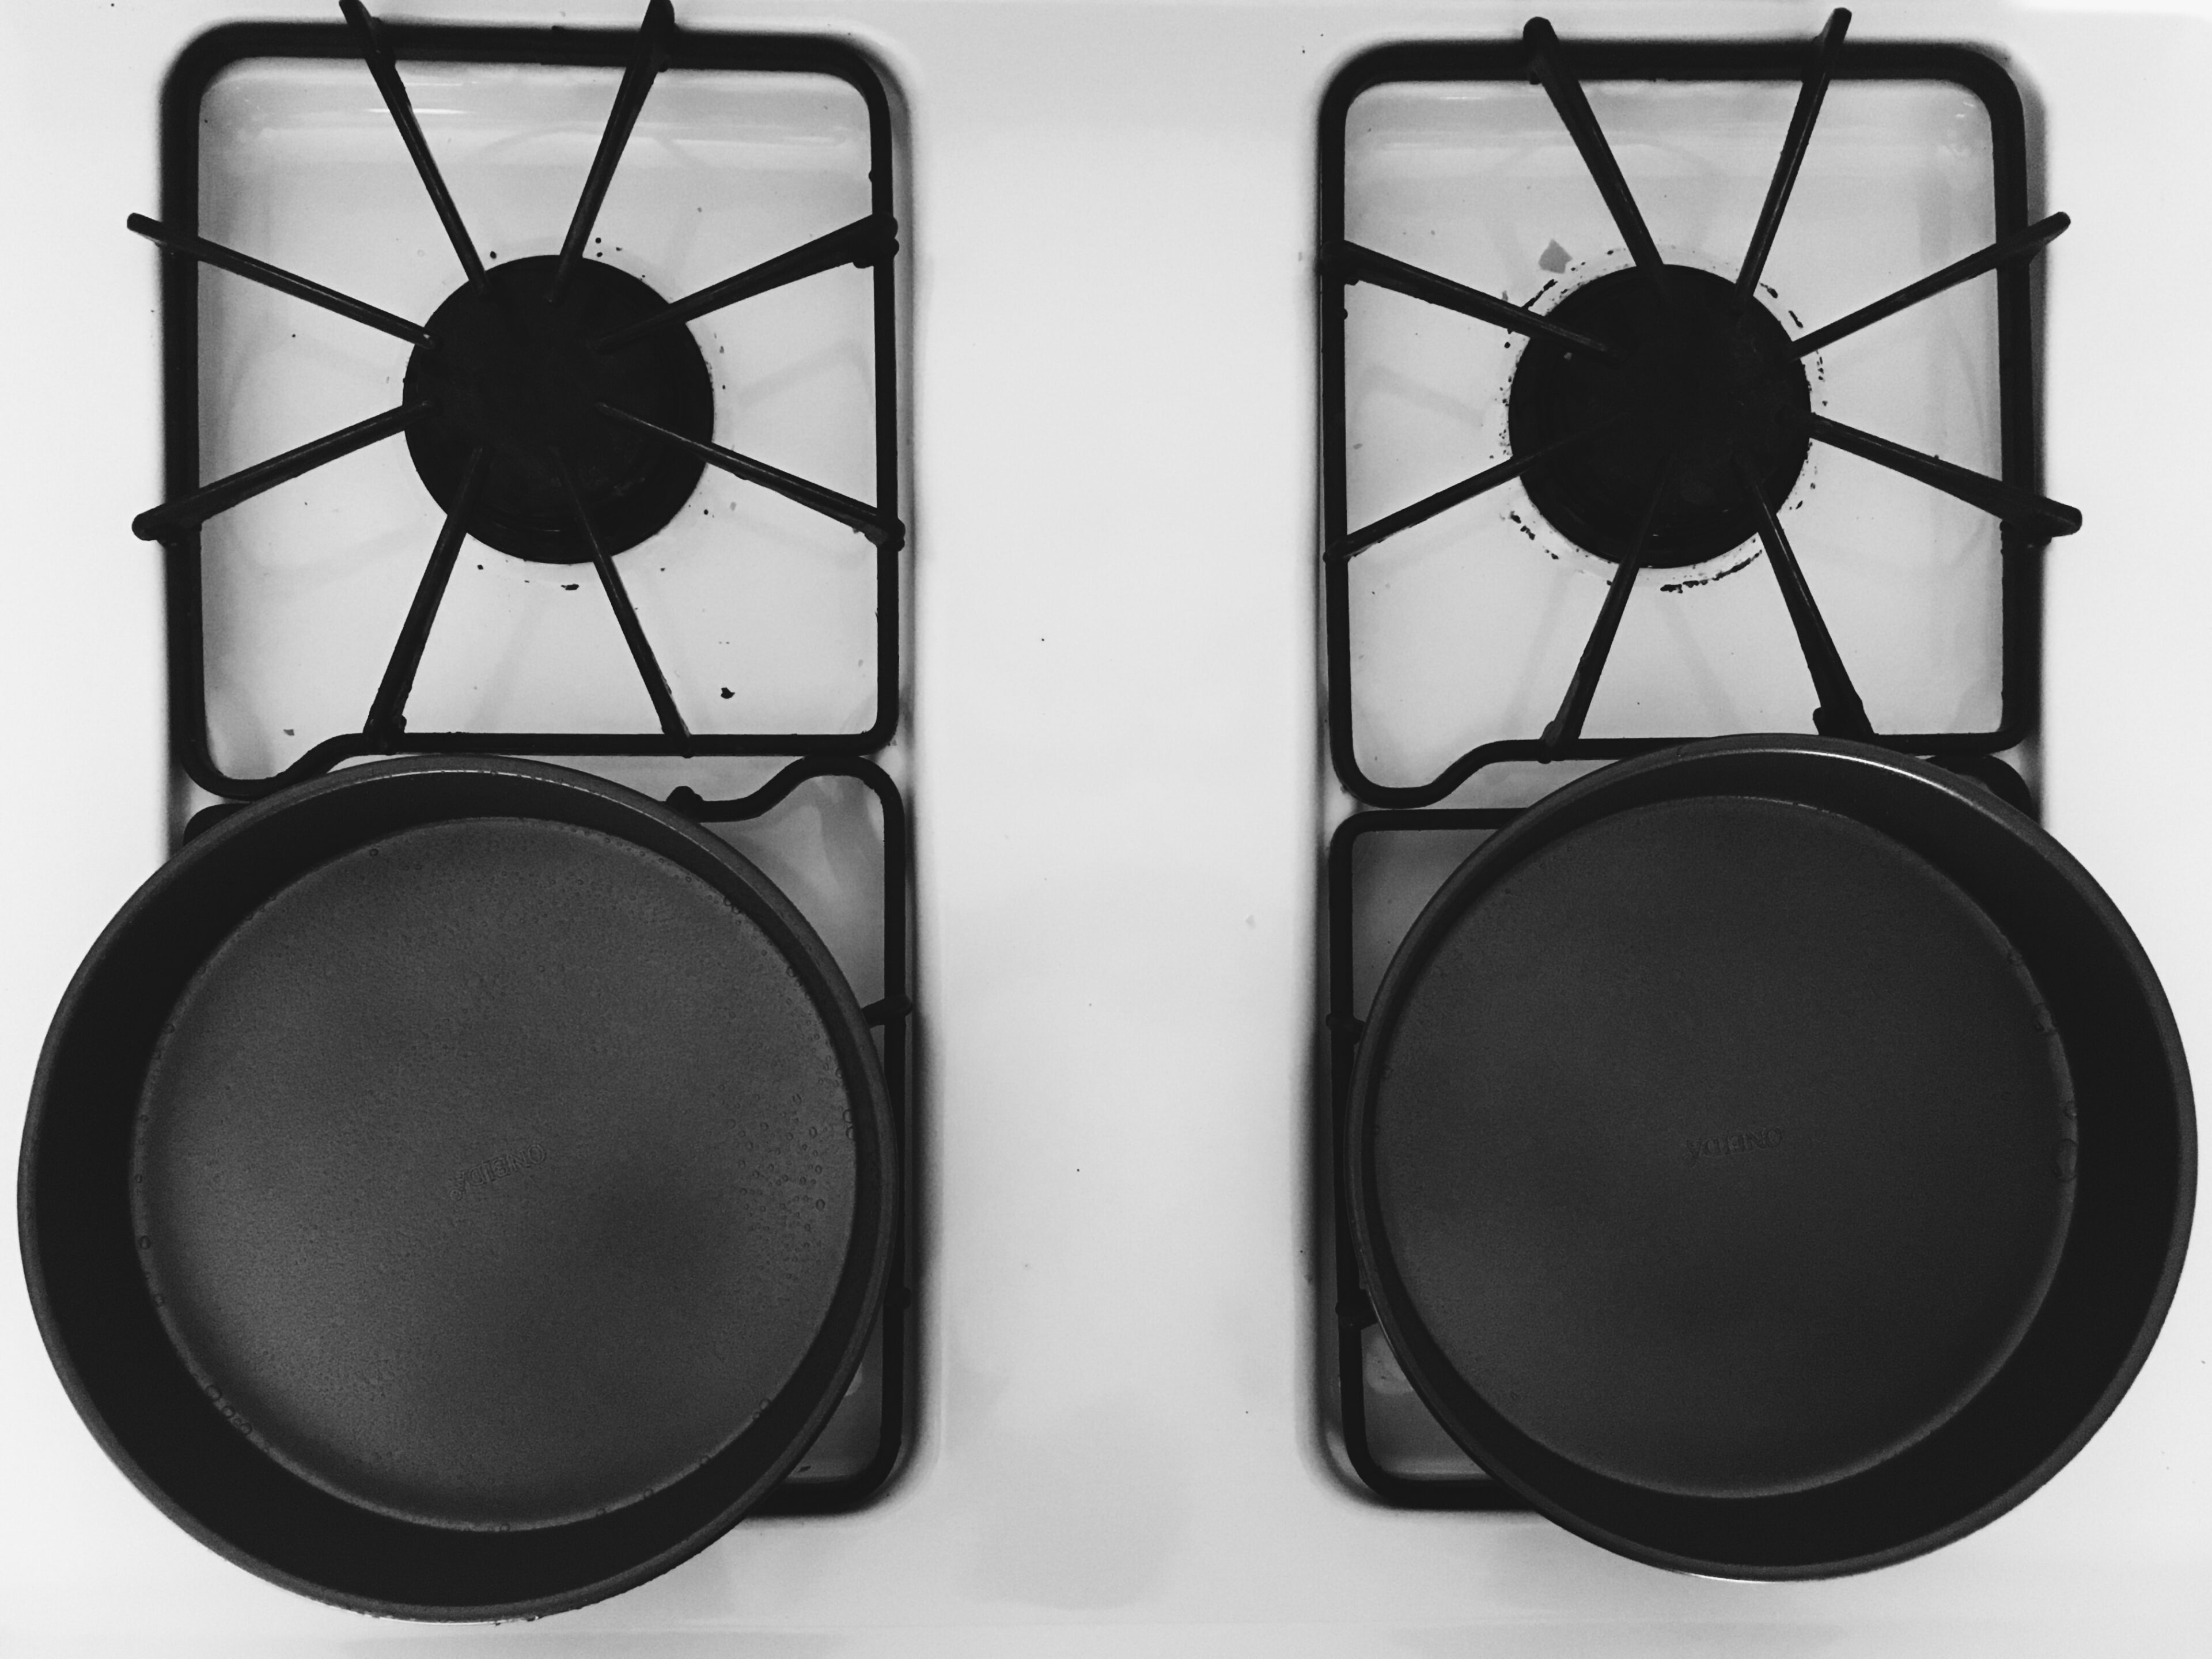 greased 8x8 inch round pans